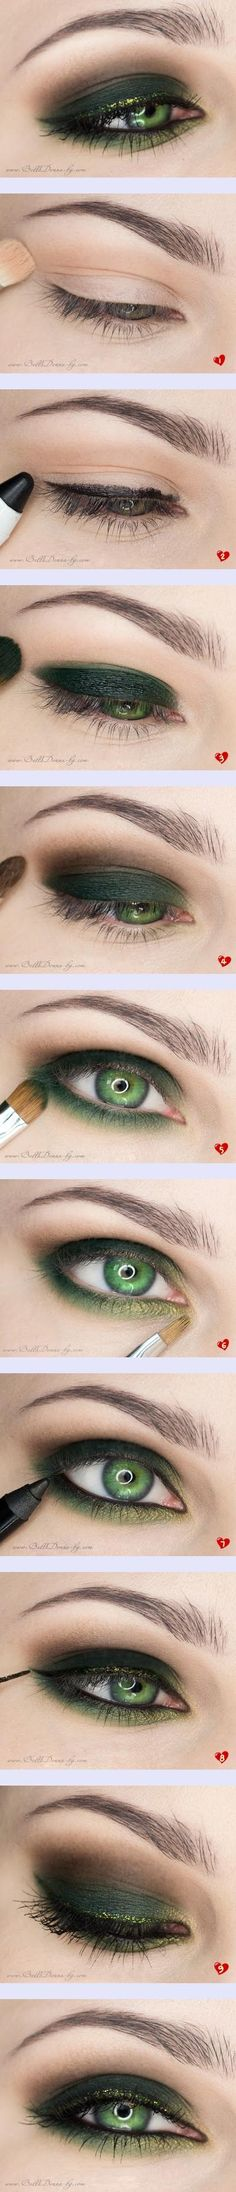 makeup for green eyes GET LISTED TODAY! http://www.HairnewsNetwork.com  Hair News Network. All Hair. All The time.